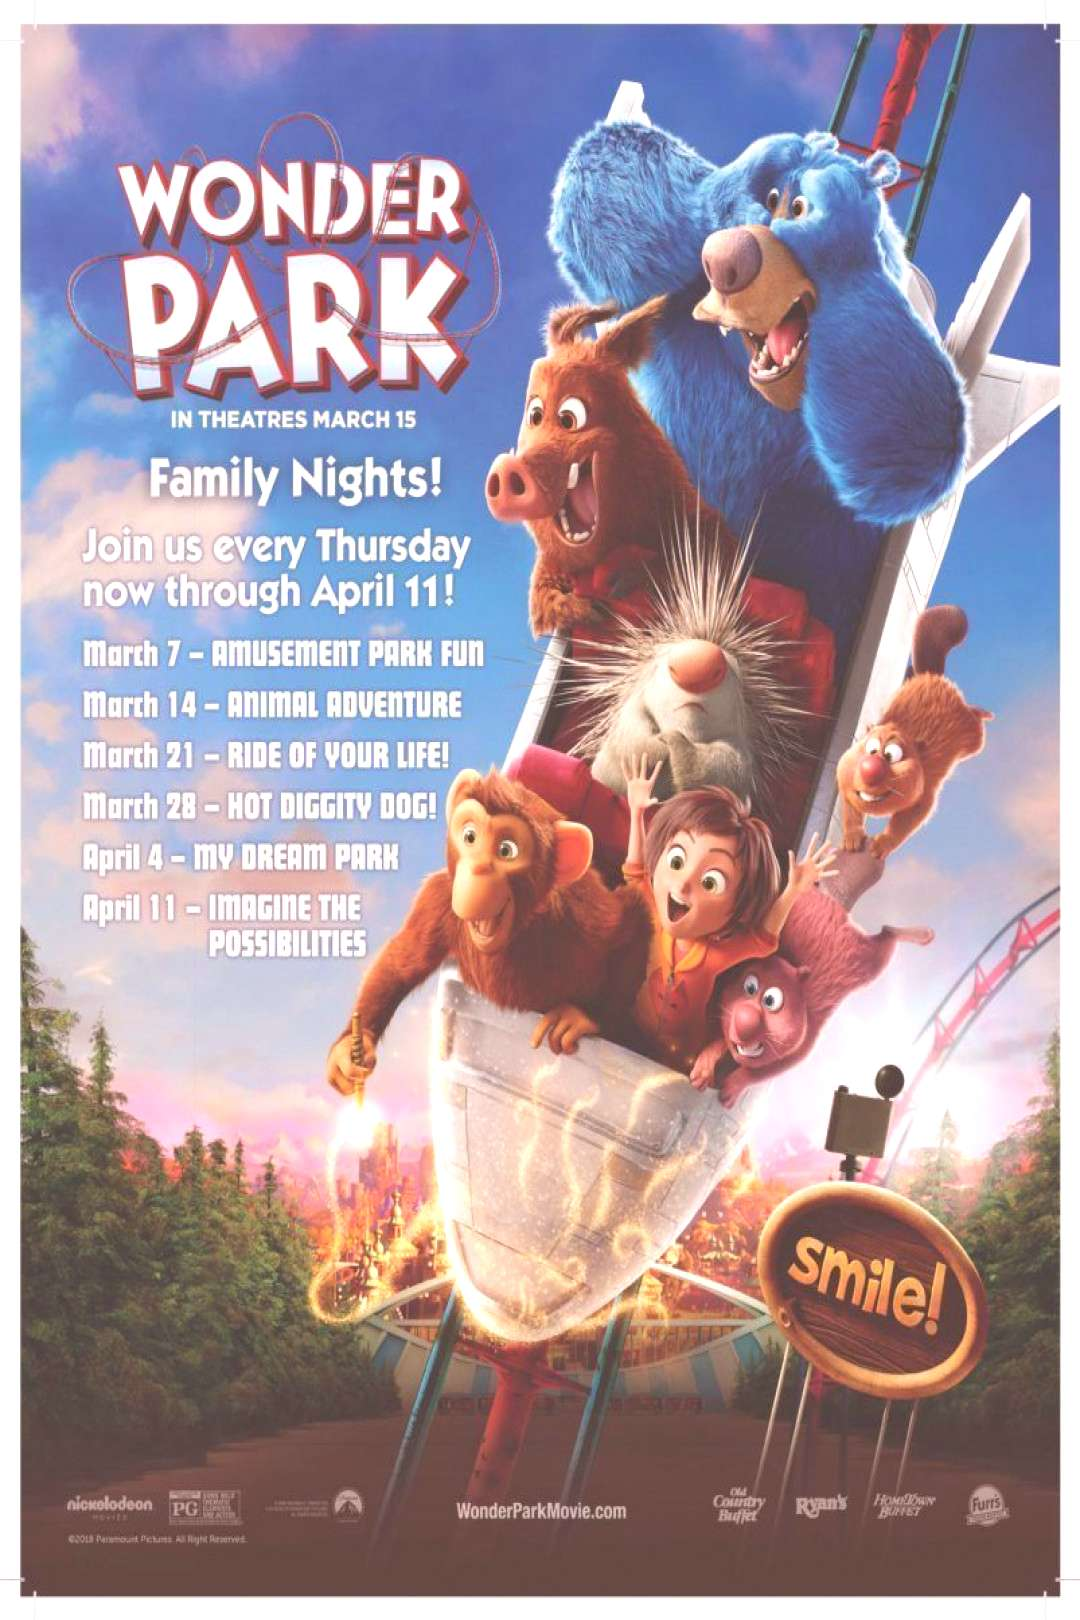 Wonder Park family nights at Ovation brand restaurants - Parenting In Progress .... Wonder Park fam